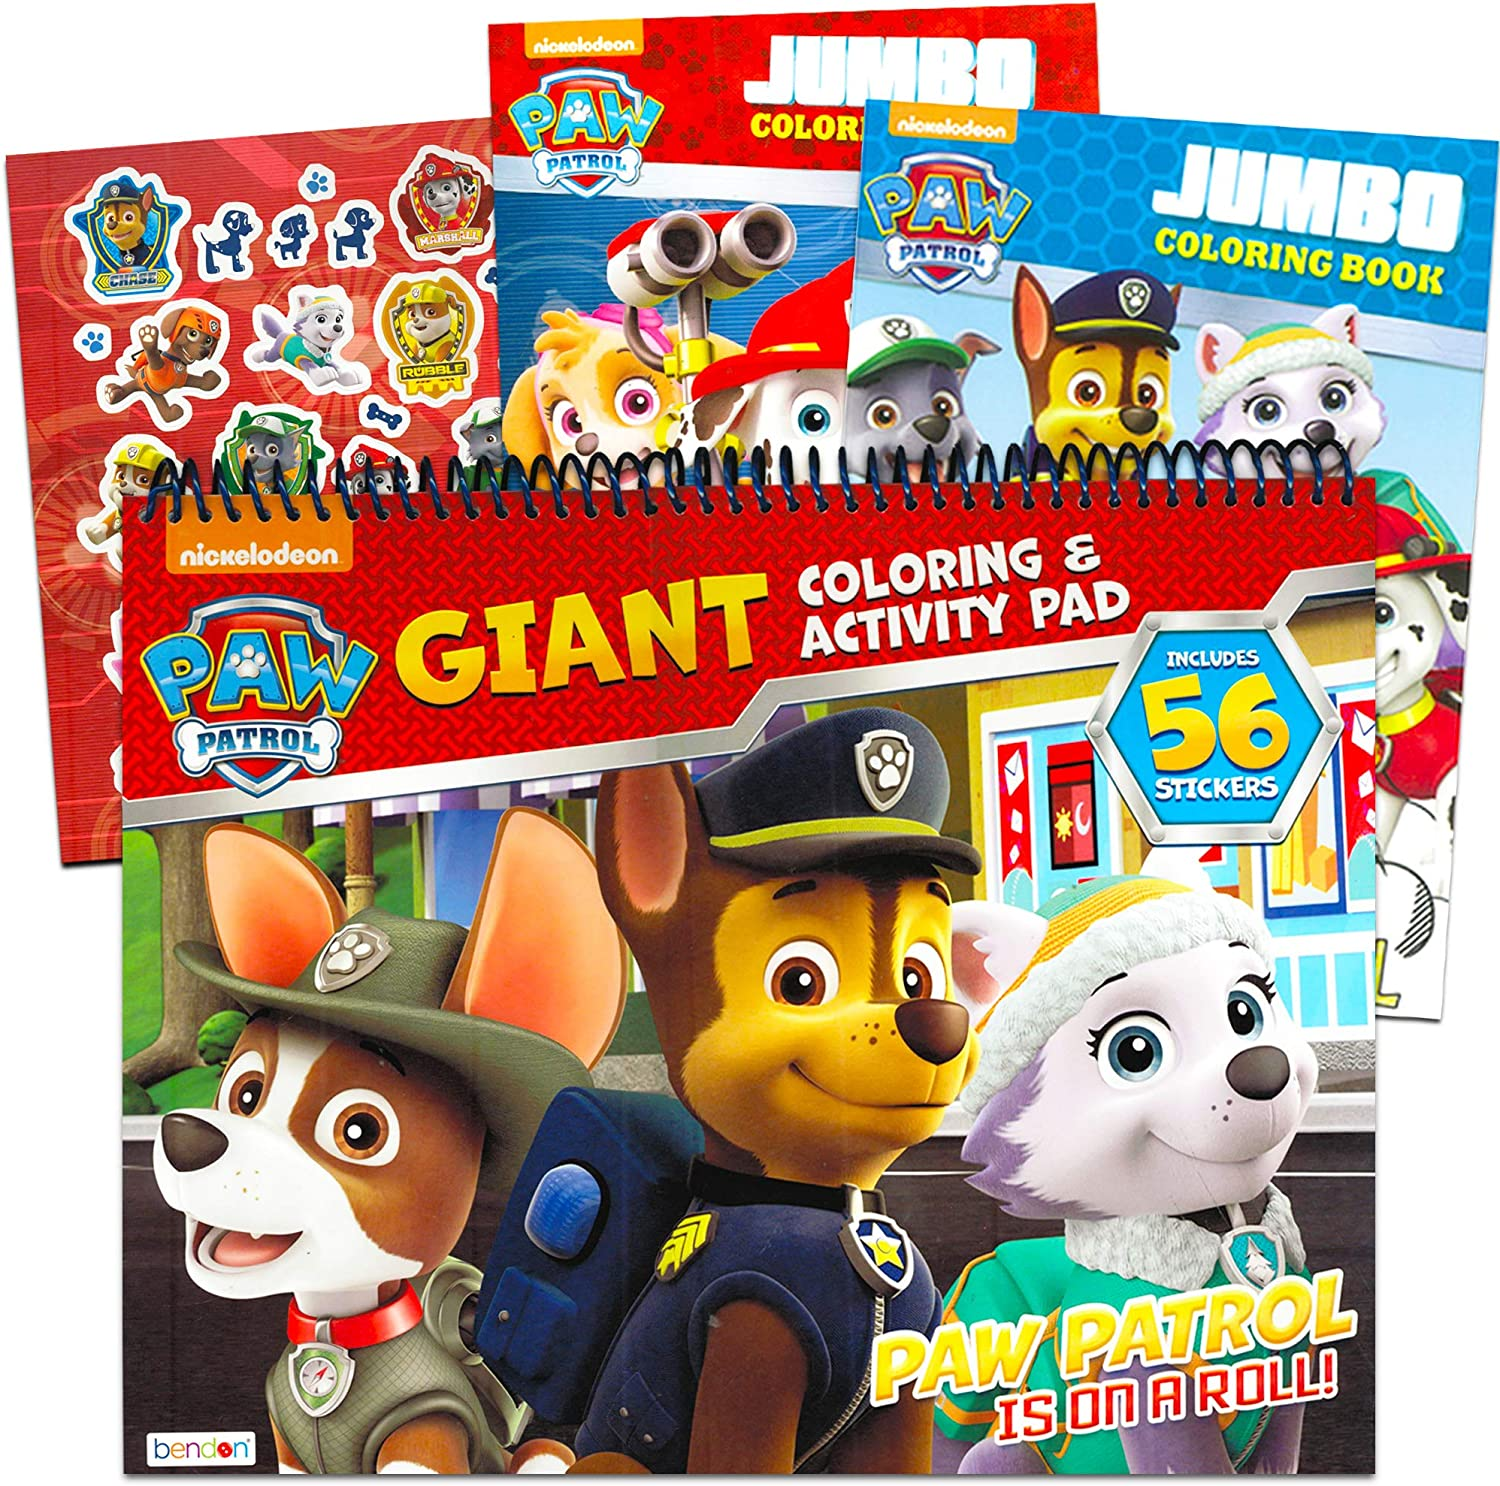 - Amazon.com: Paw Patrol Coloring And Activity Book Set (3 Coloring